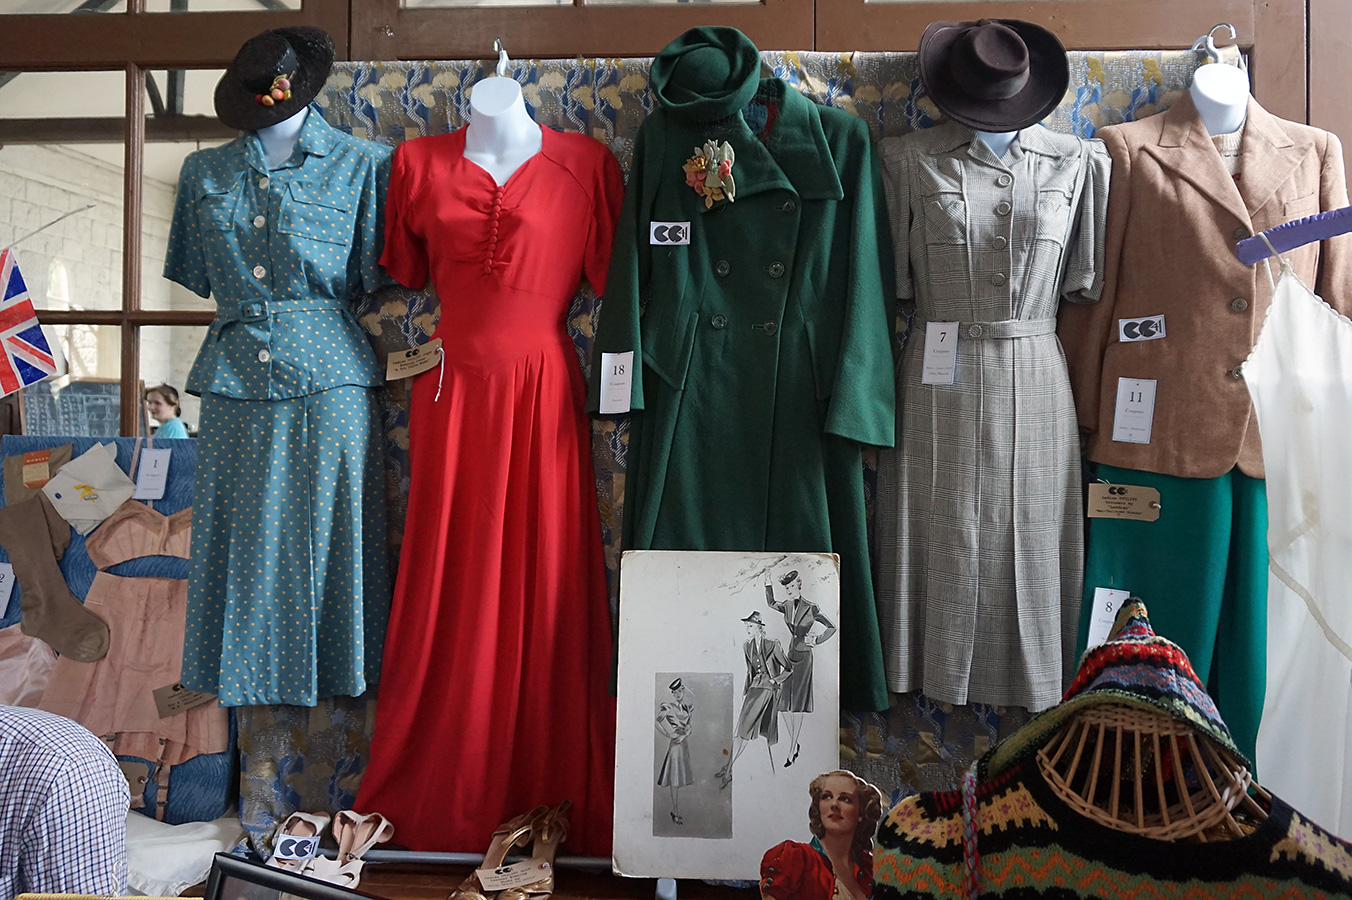 ww2 Women's clothing exhibit